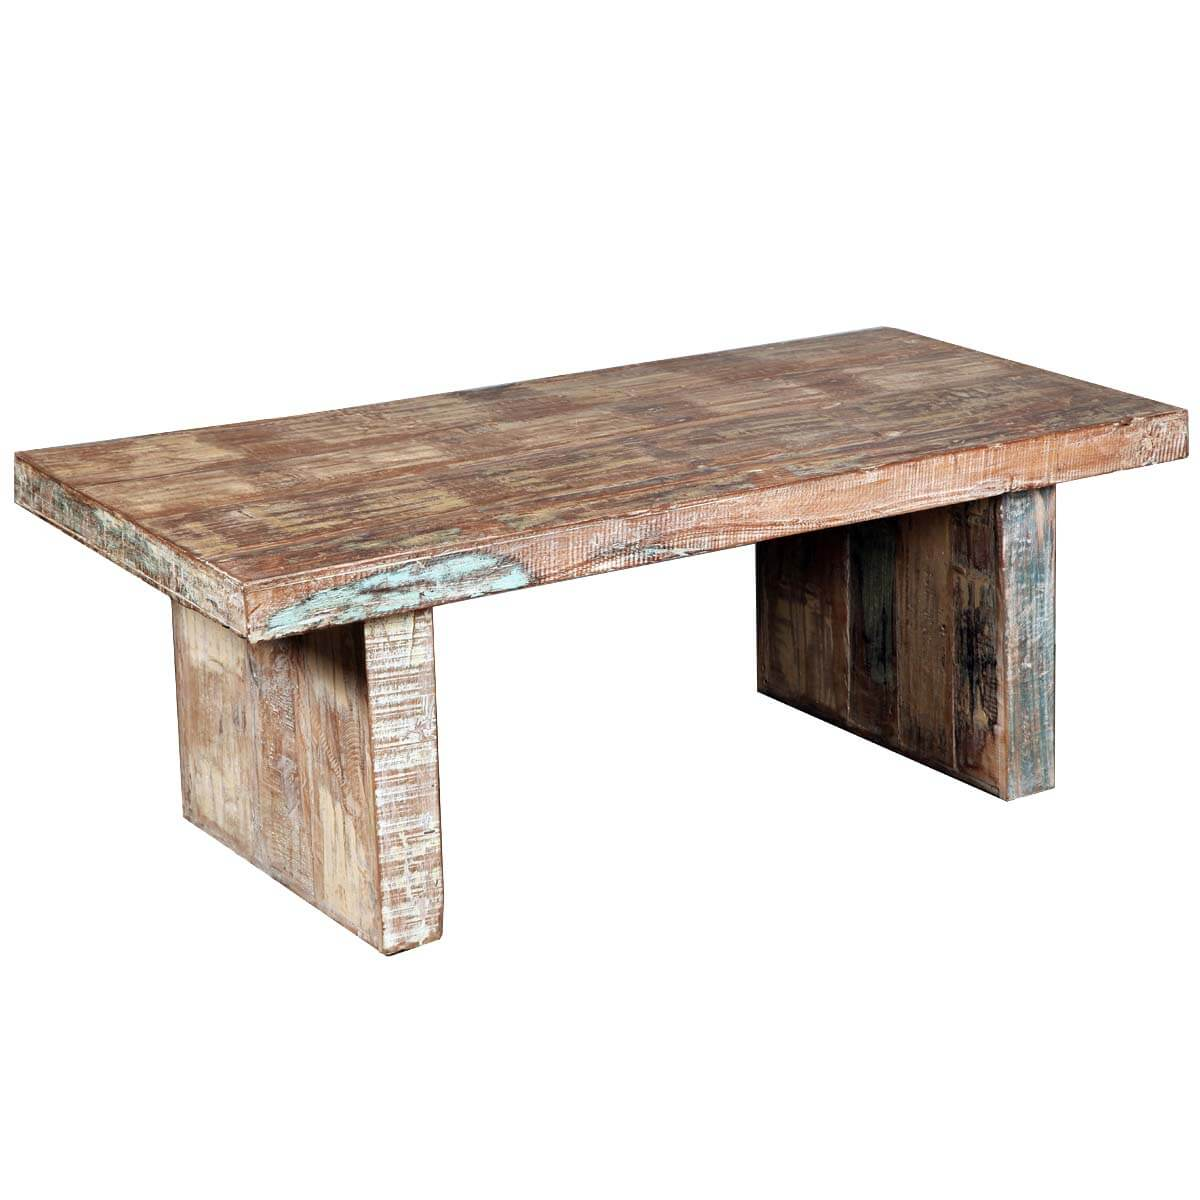 Rustic mission reclaimed wood distressed coffee table Rustic wooden coffee tables